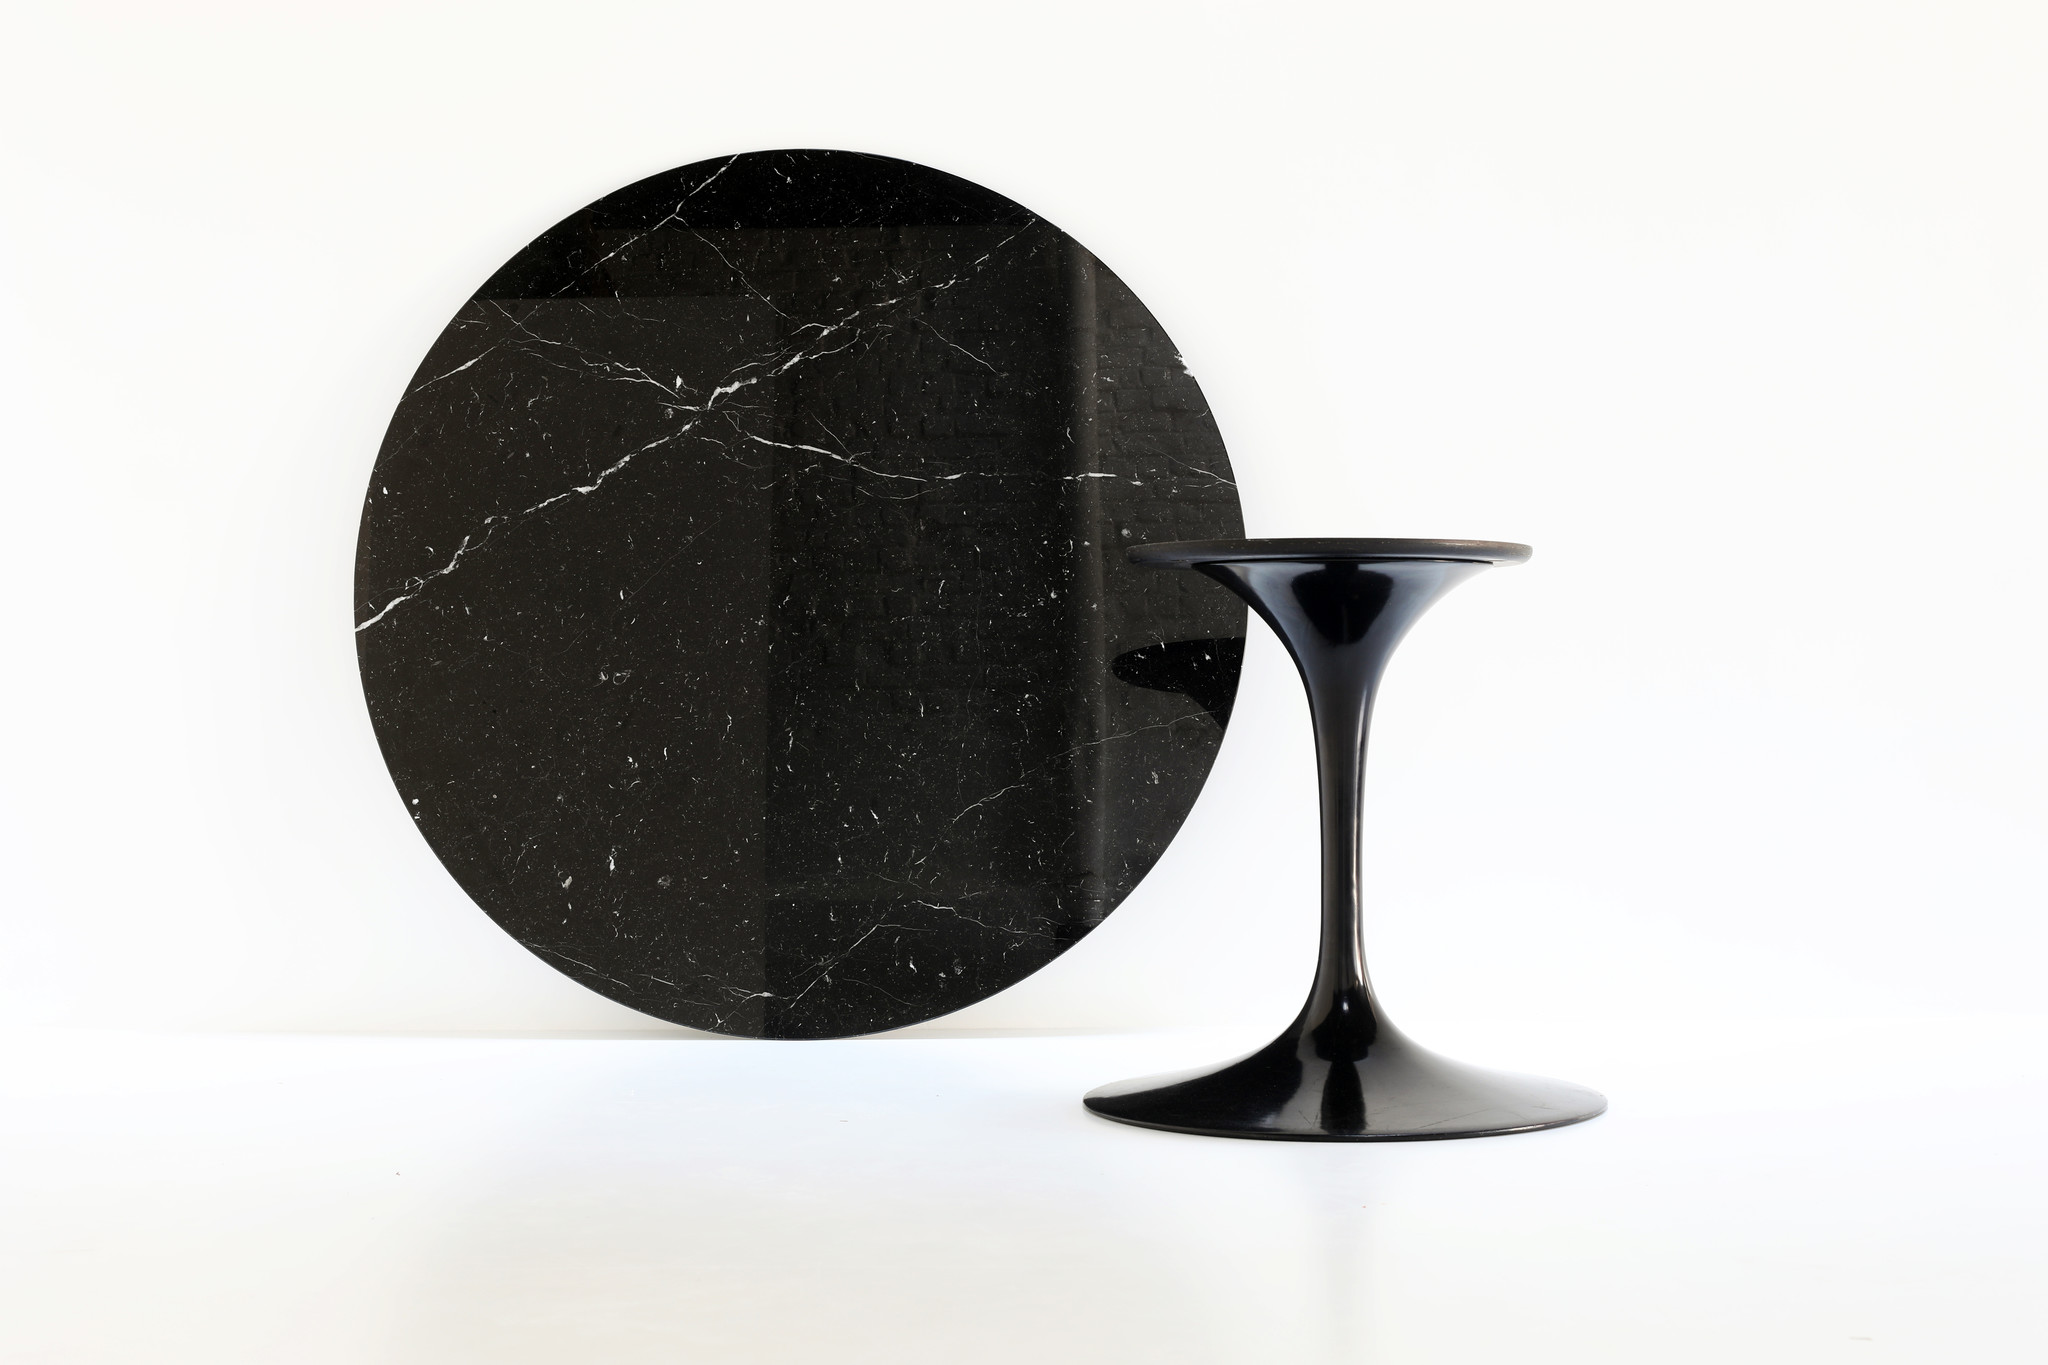 Round Knoll tulip table in black marble by Eero Saarinen for knoll